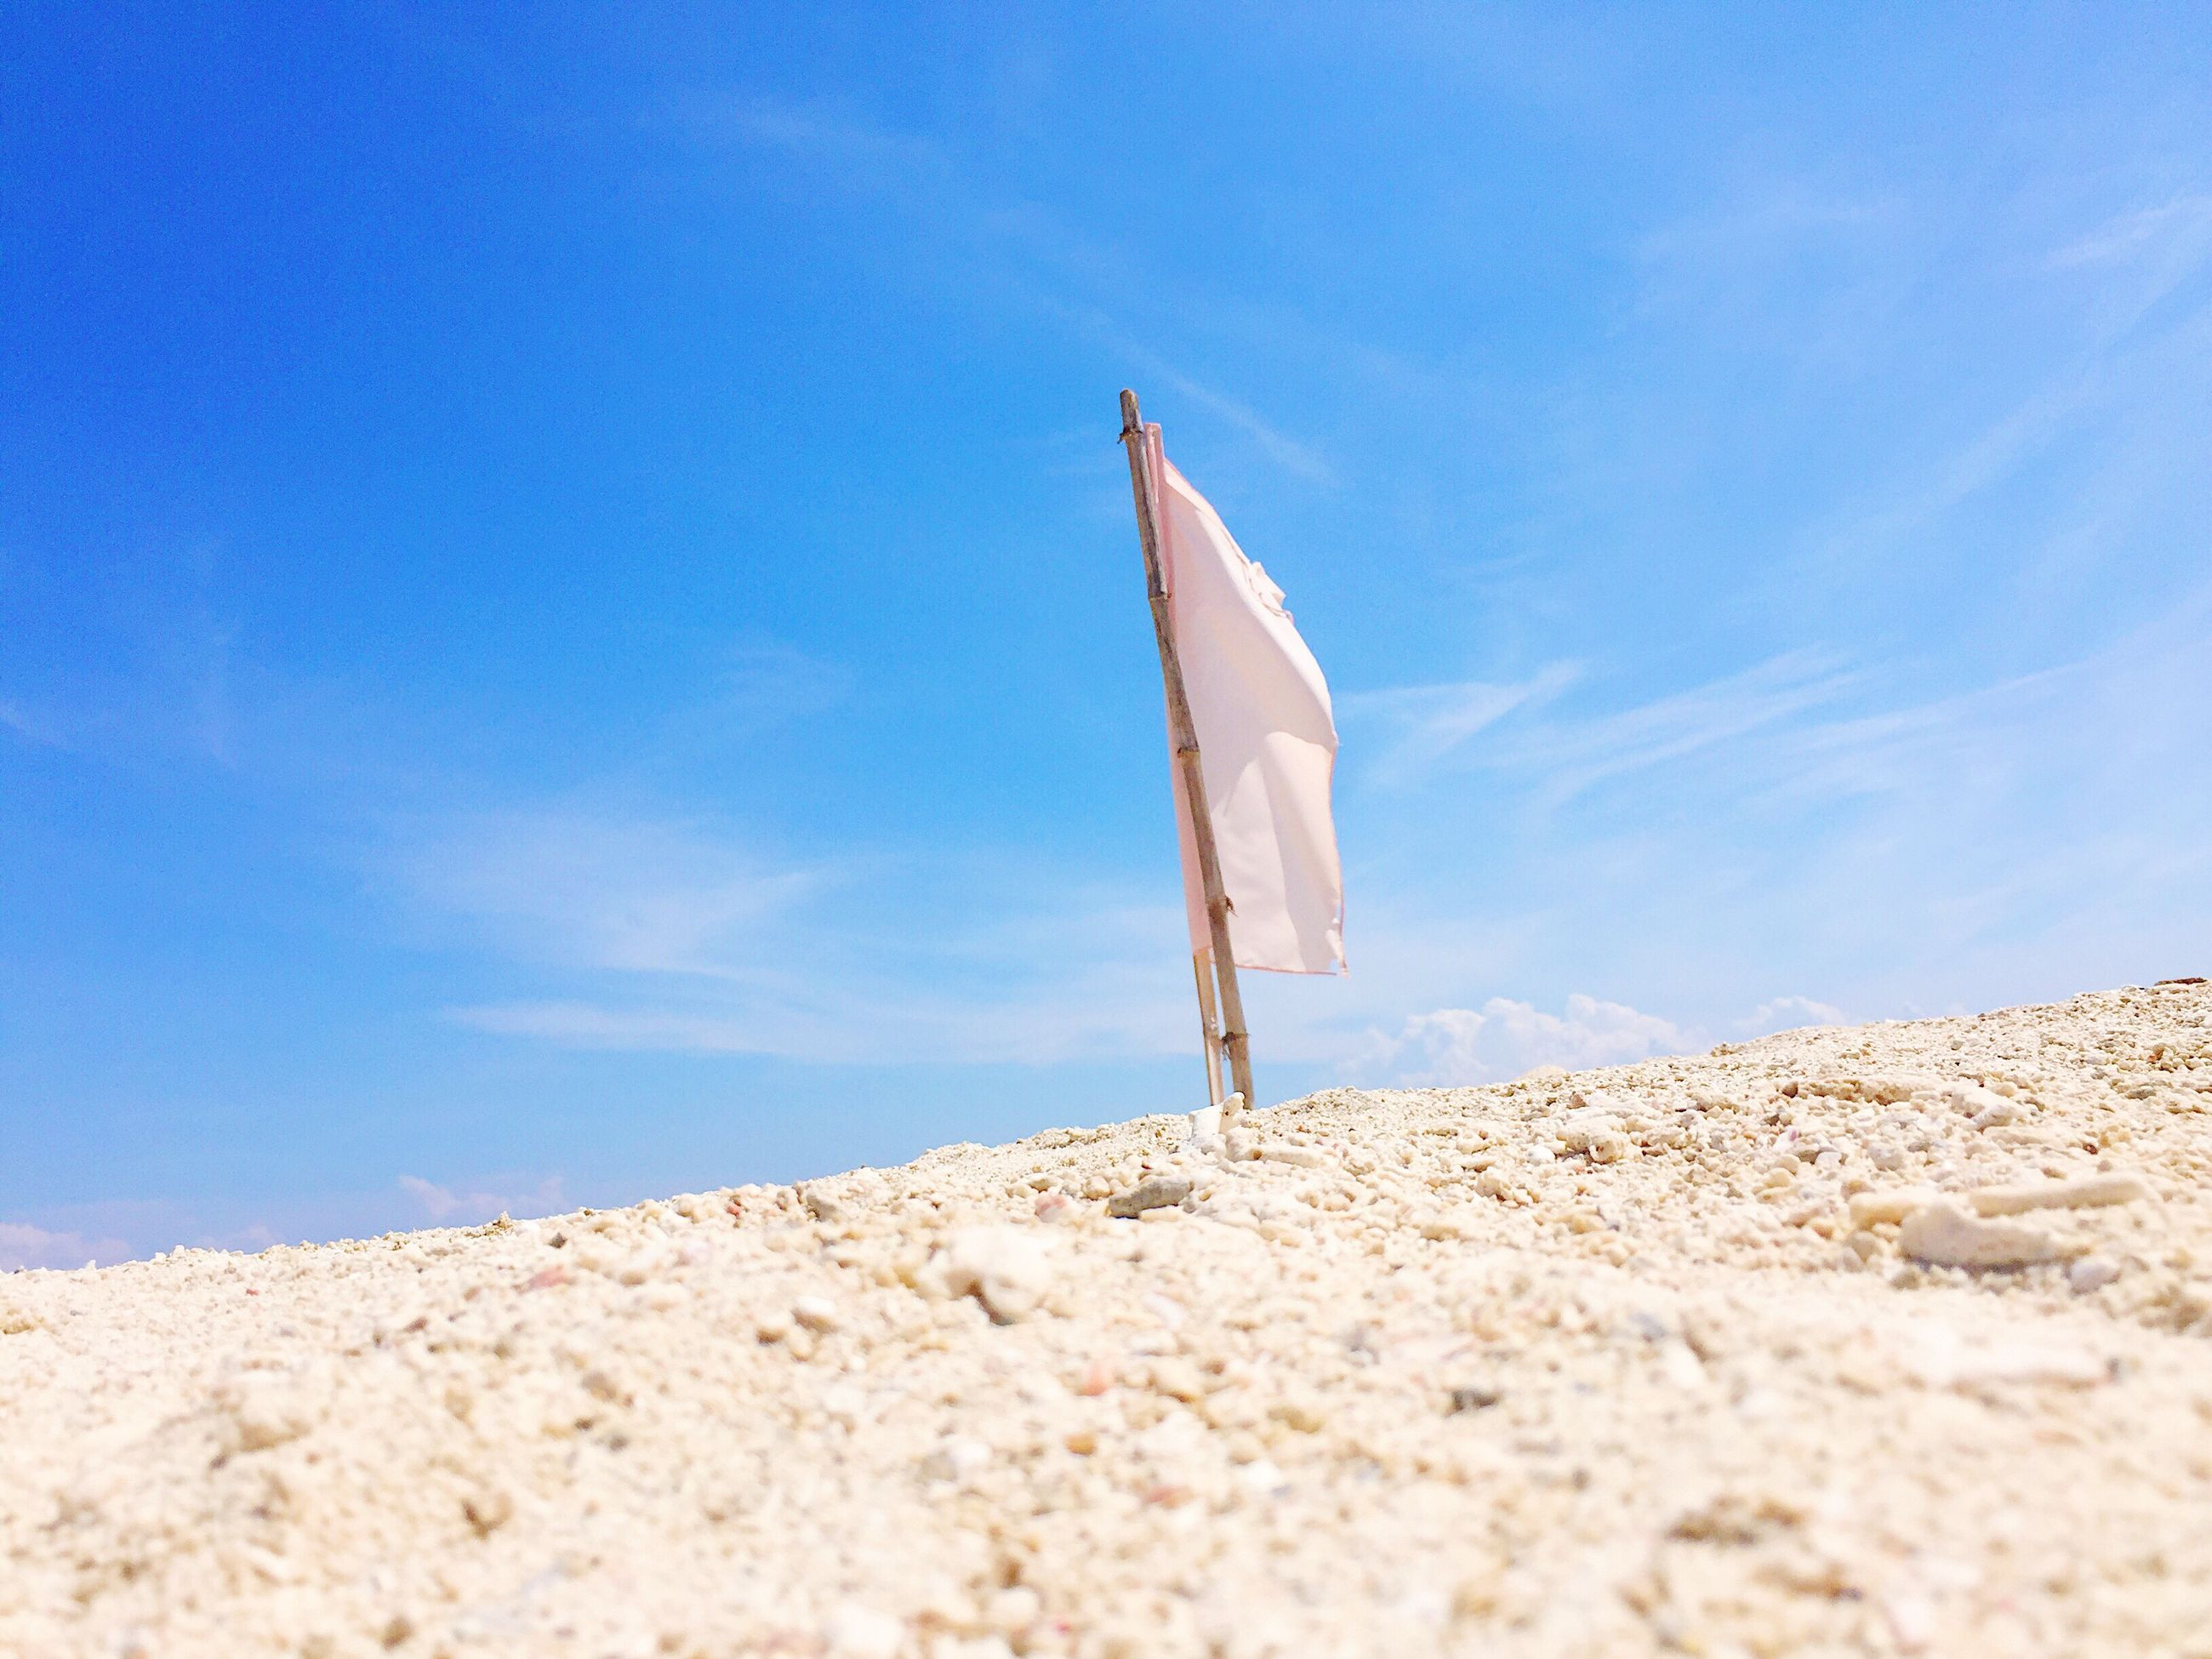 beach, blue, day, sand, outdoors, nature, sky, sunlight, no people, beauty in nature, close-up